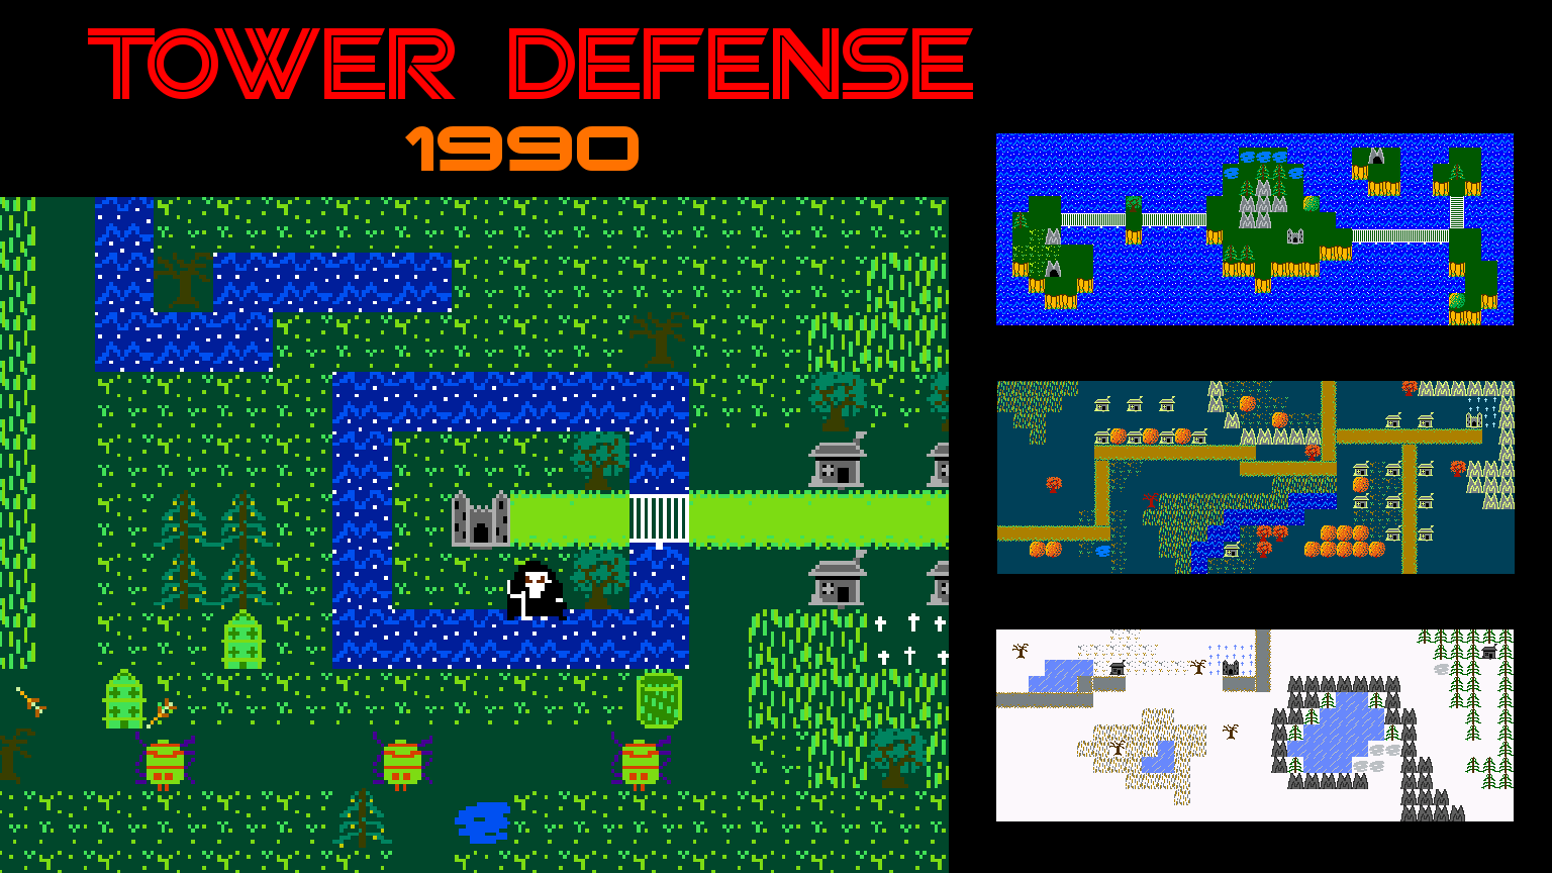 Tower Defense 1990 - A New NES Game